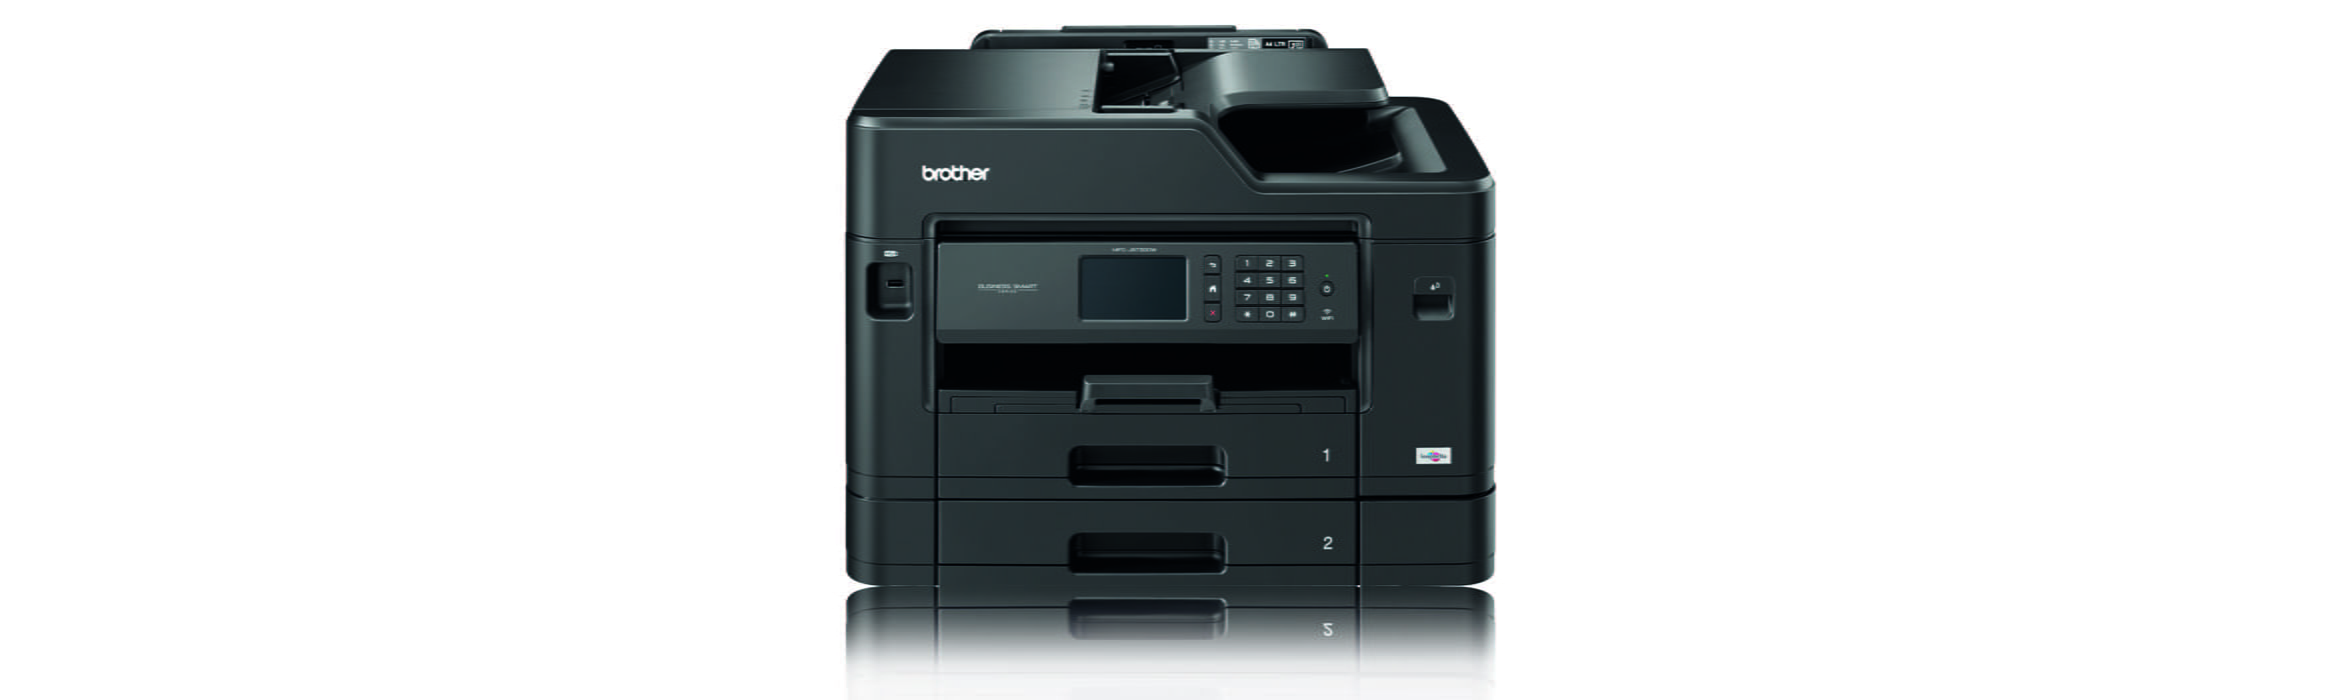 Brother MFC-J5730DW business smart printer